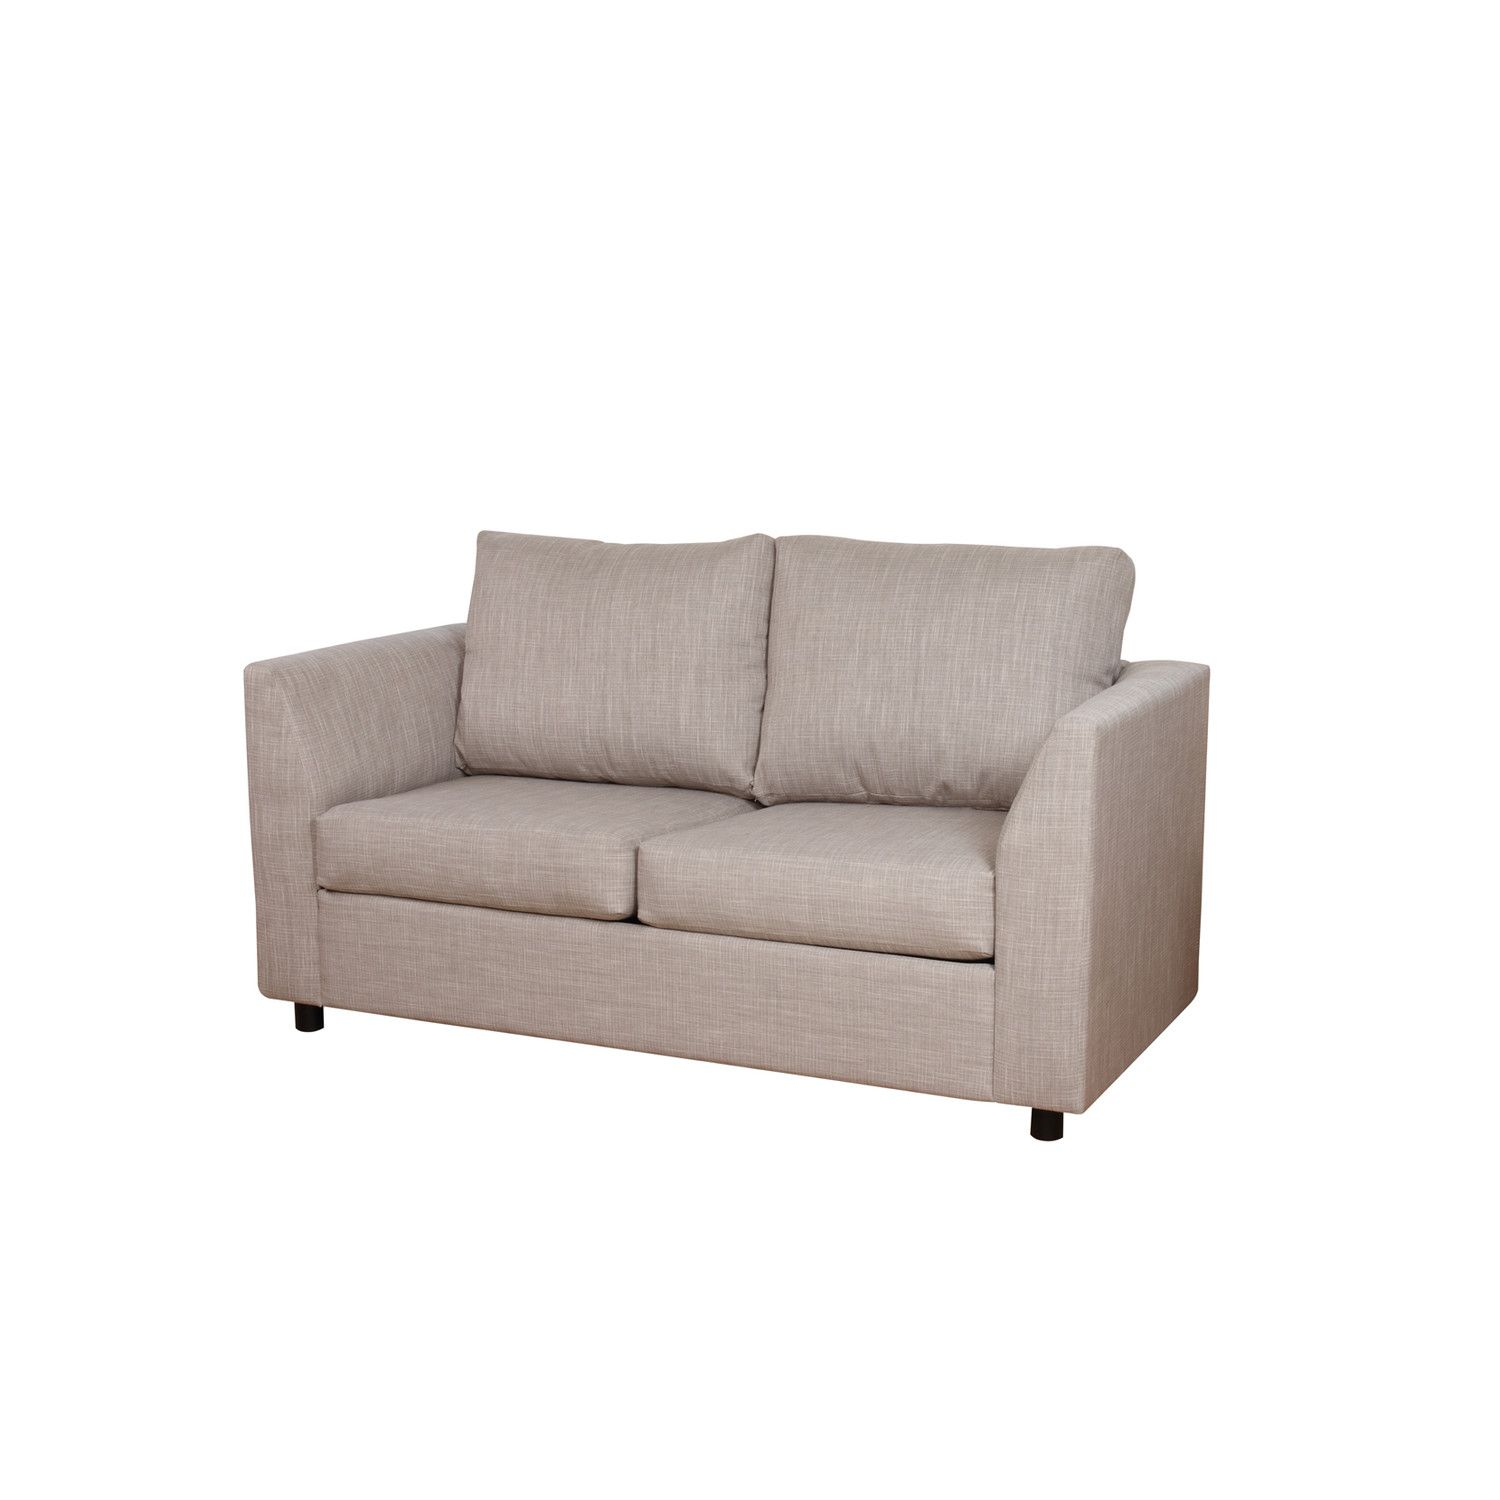 Kyoto Futons Denver 2 Seater Fold Out Sofa Bed Other Colours Available 409 Beds 500 That Aren T Hideous Pinterest